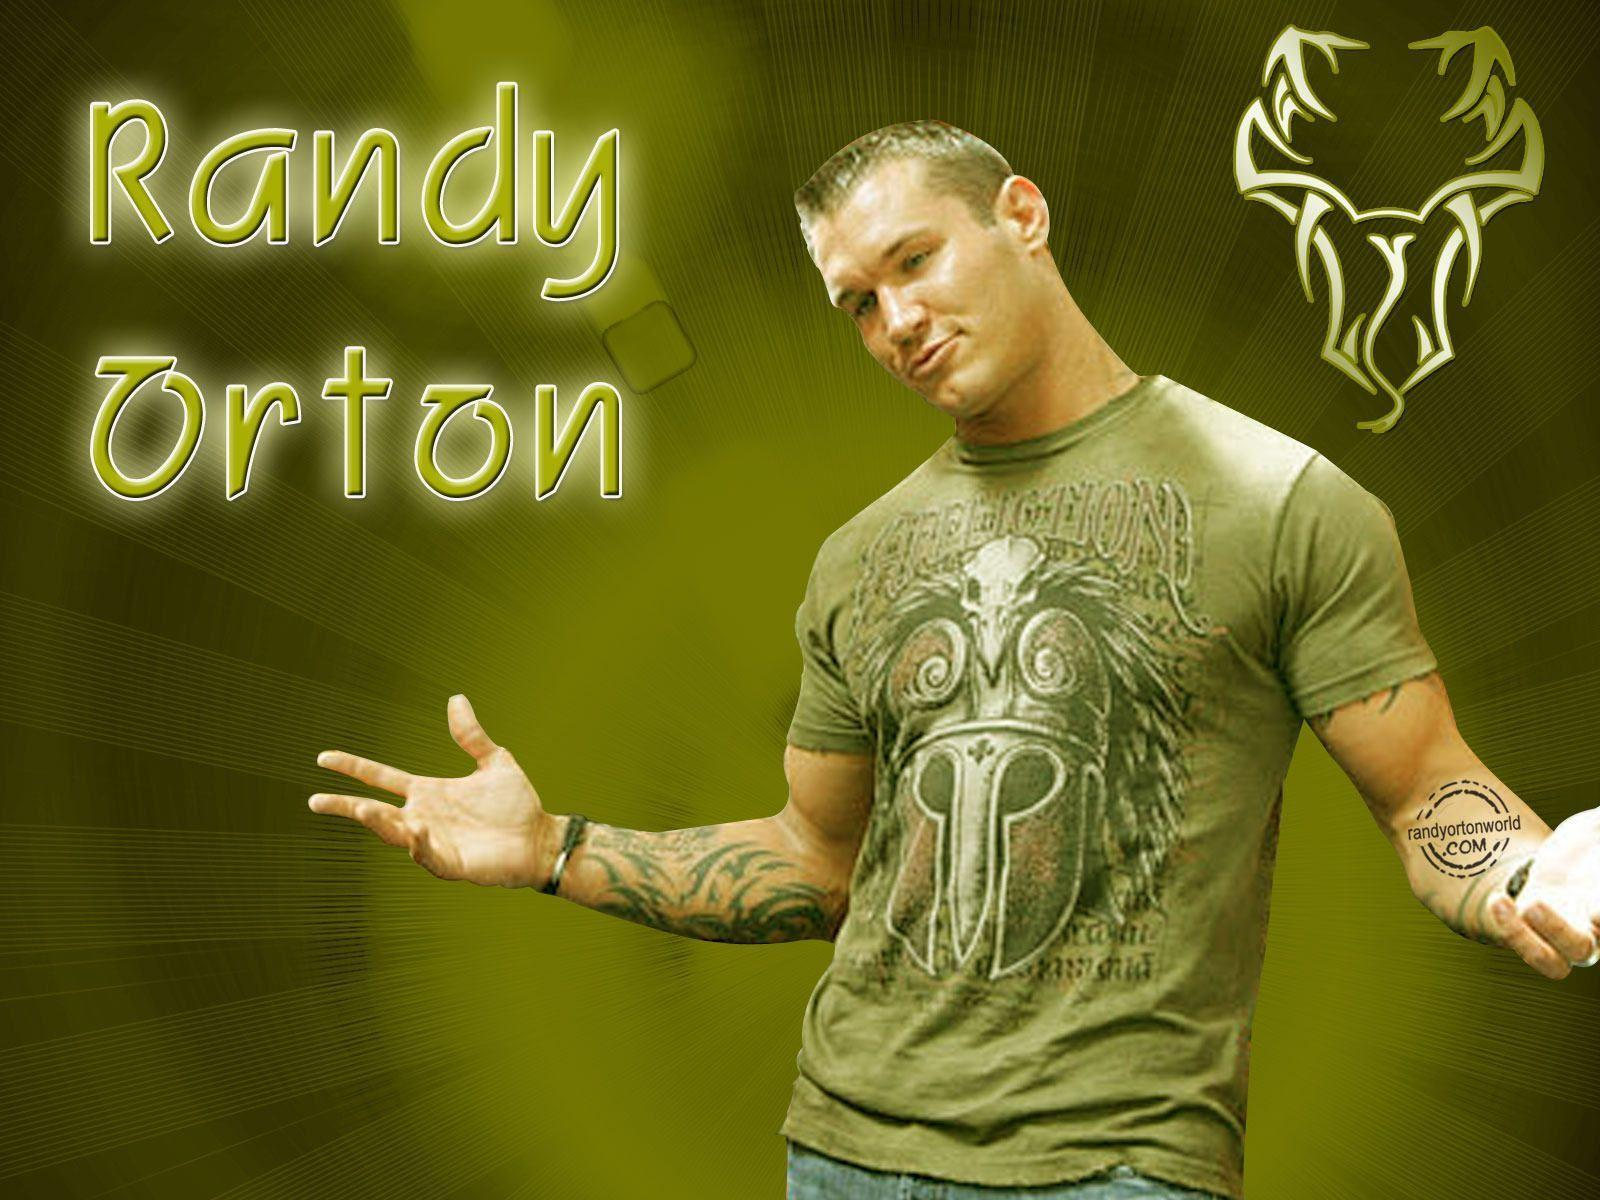 Cool Randy Orton Wallpaper | WWE Randy Orton